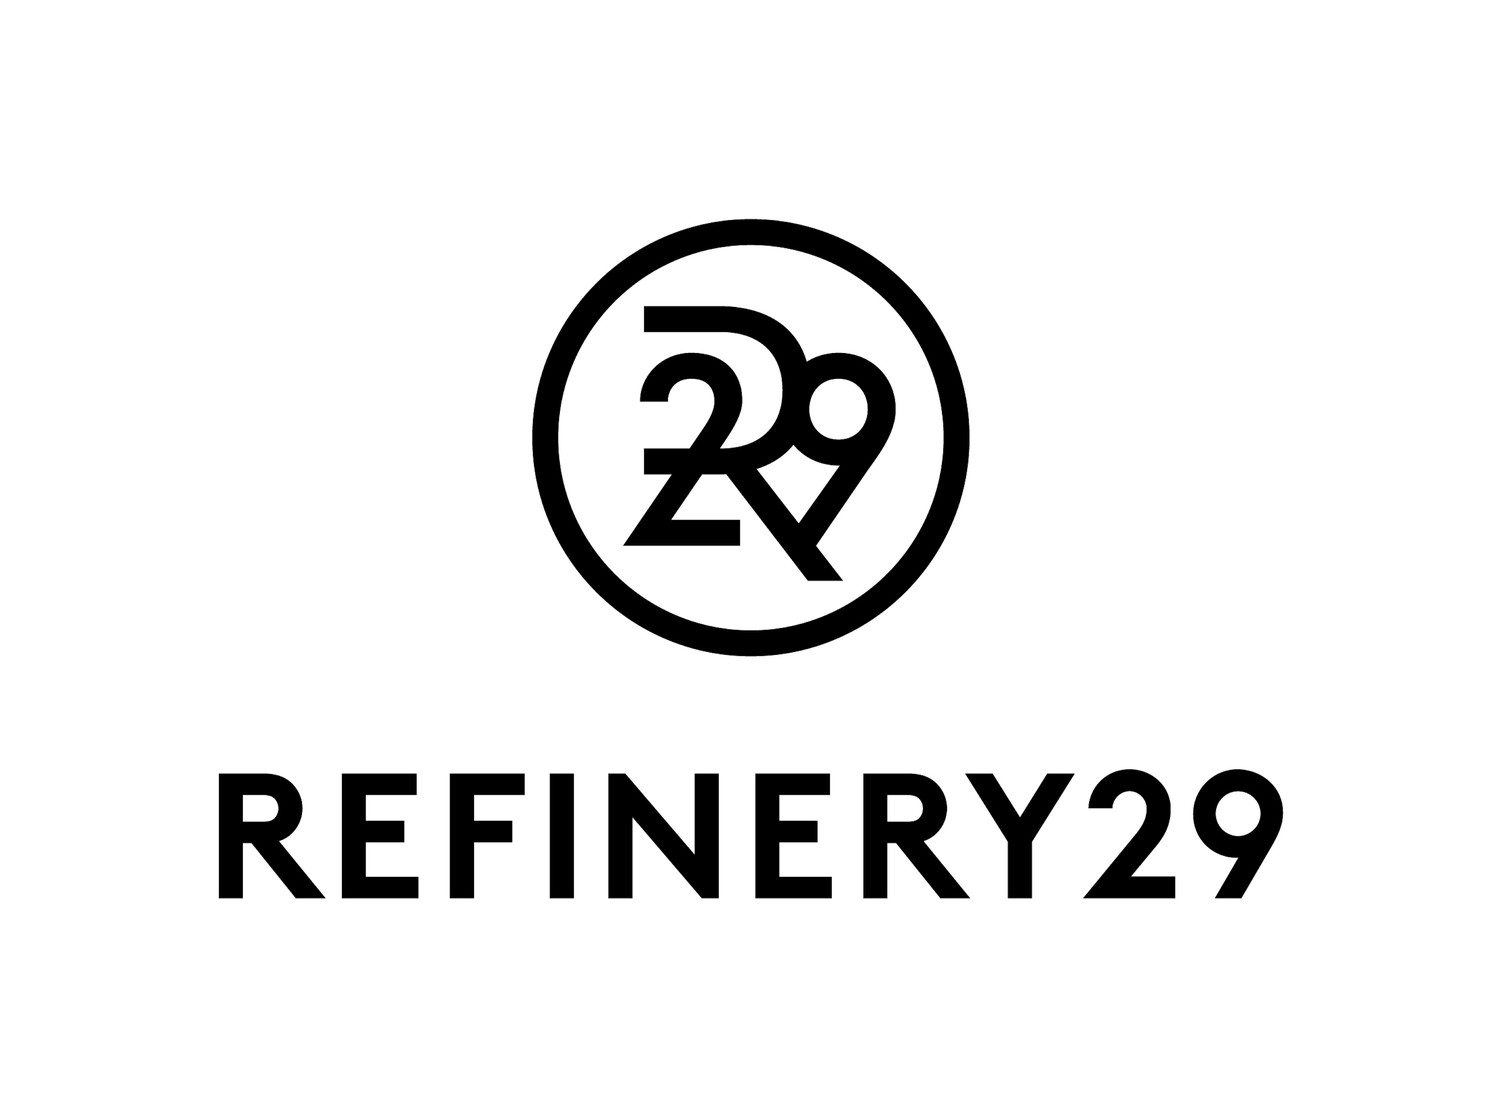 Reginery29 logo